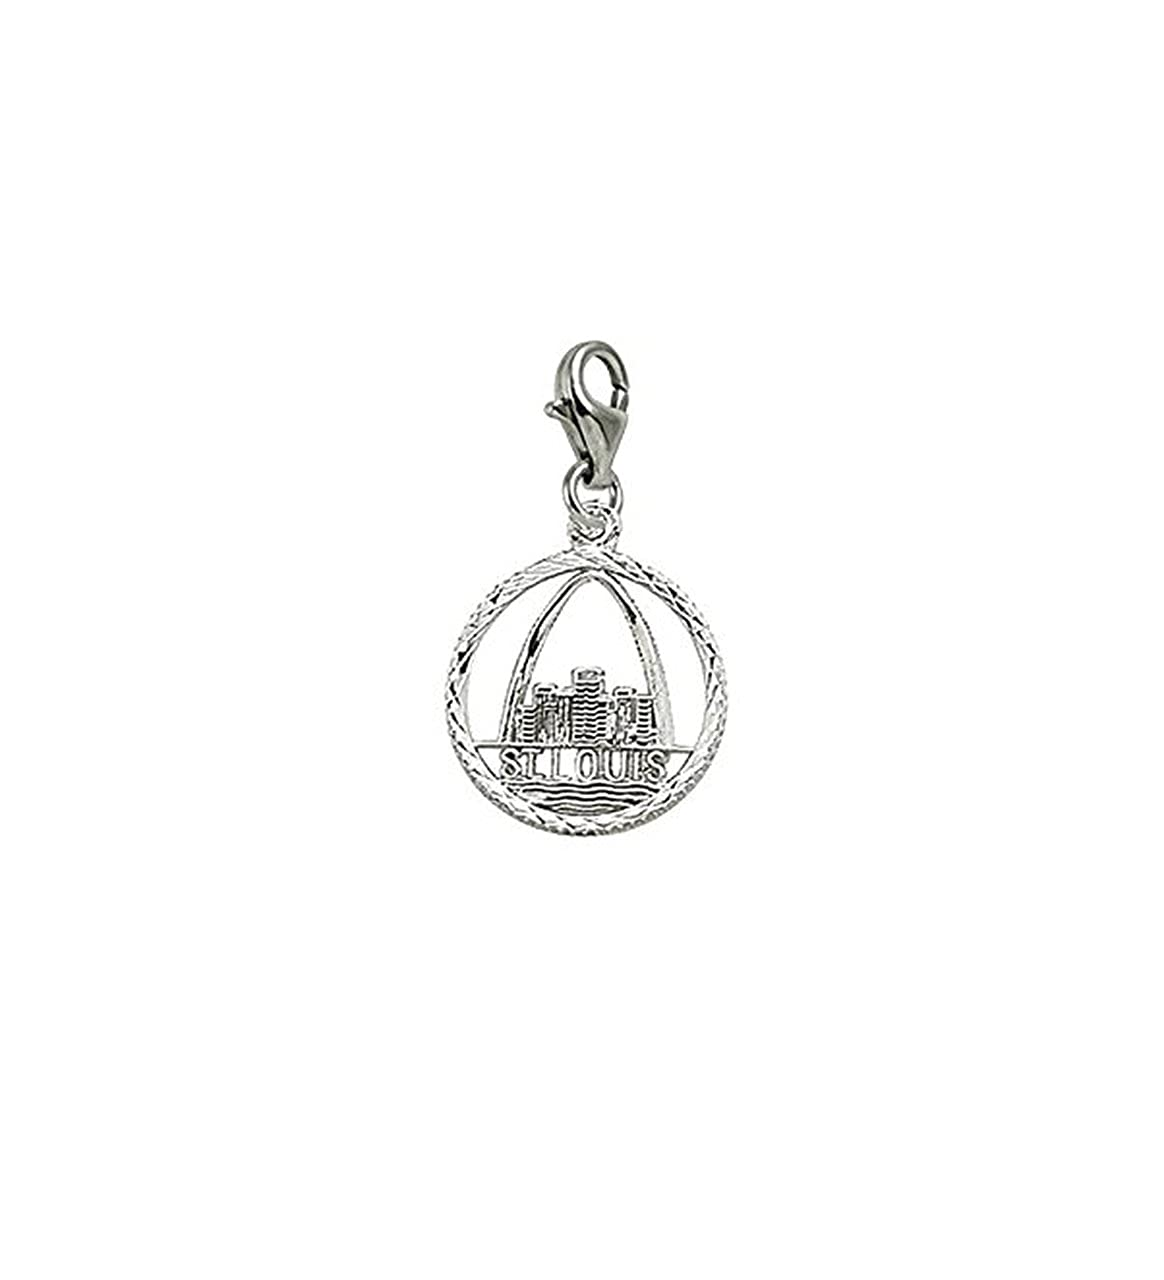 Charms for Bracelets and Necklaces St Louis Charm With Lobster Claw Clasp